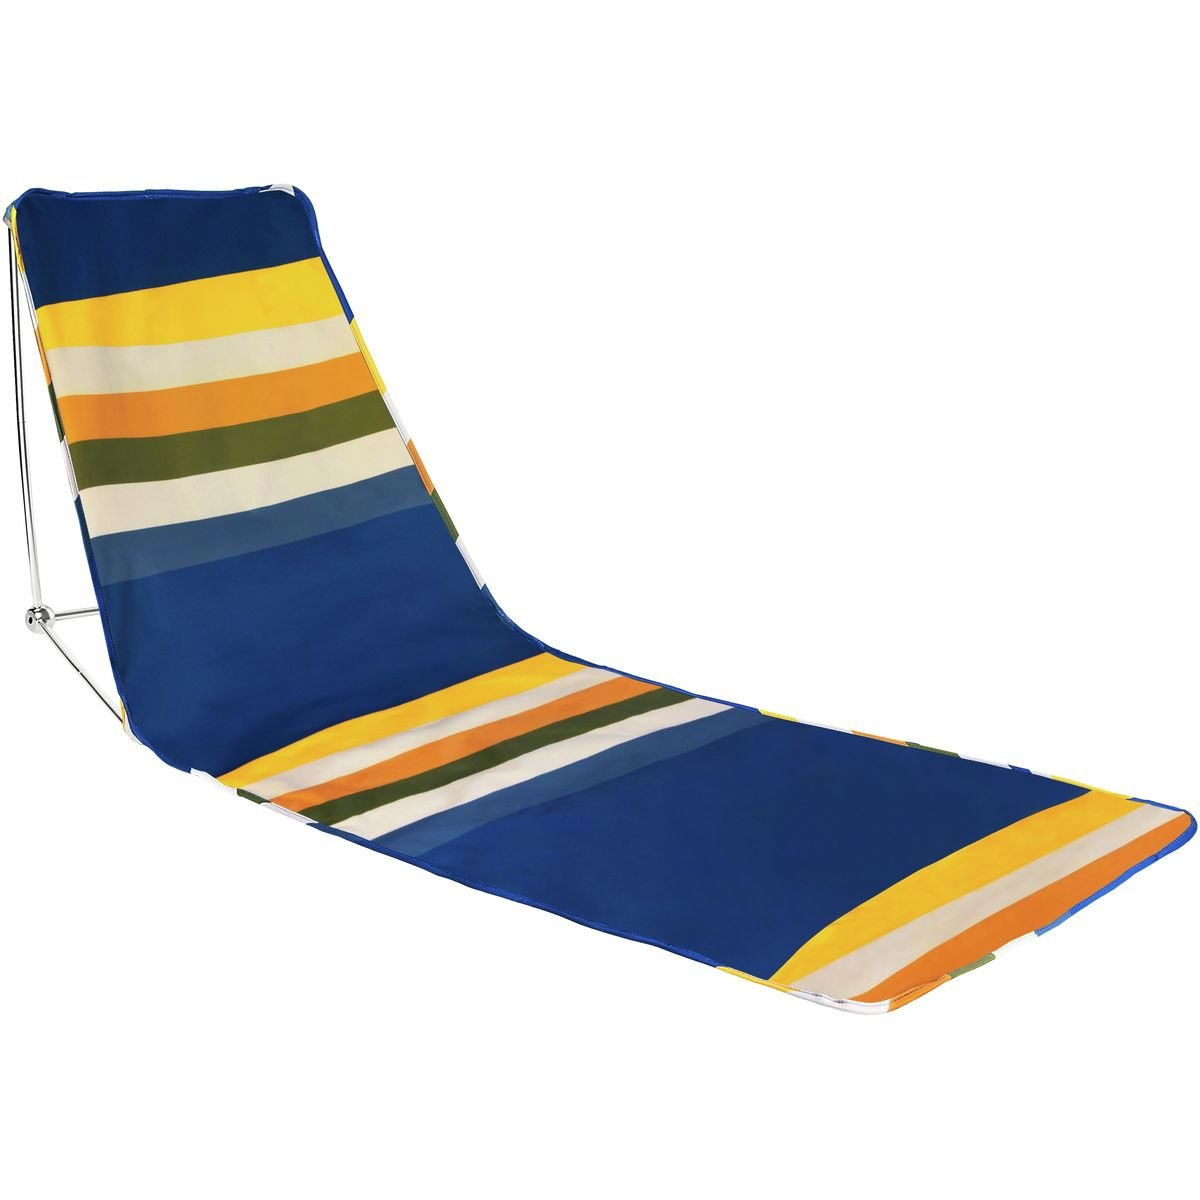 Alite Meadow Rest Camping Chair One Größe Riptide